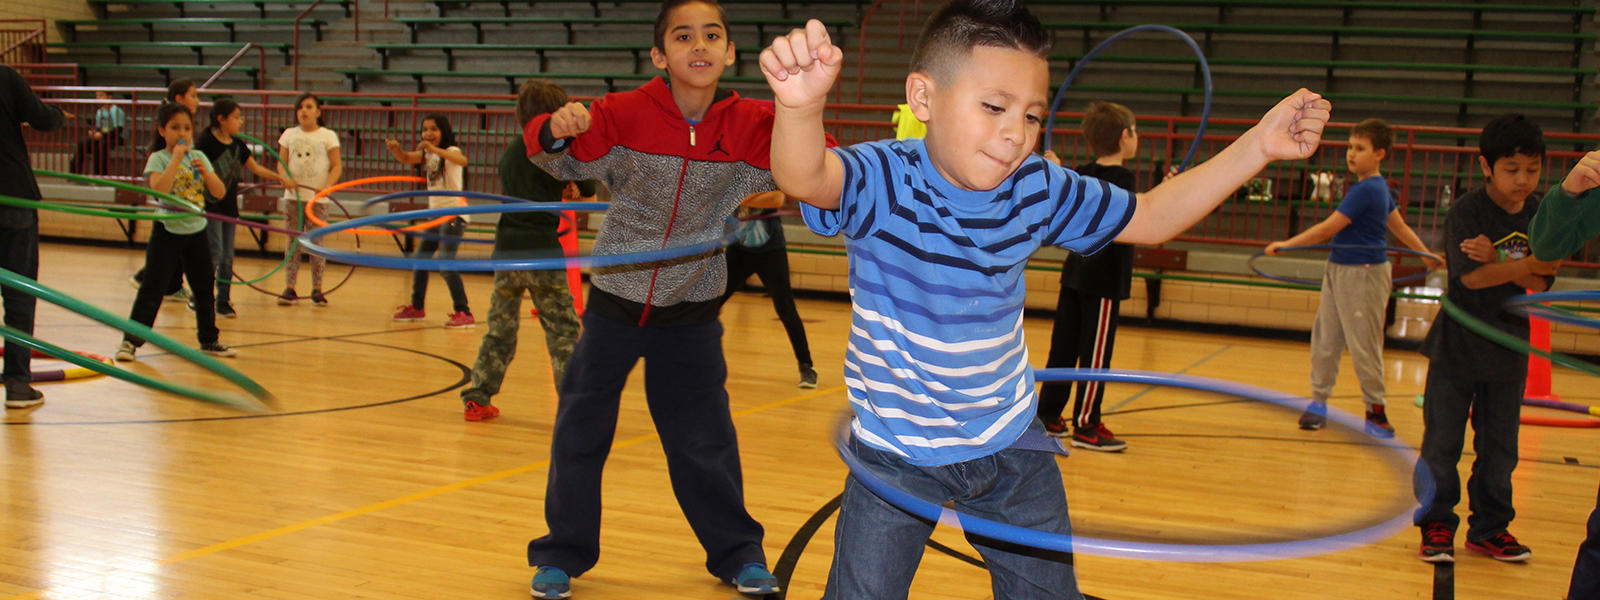 John Mills students do the Hula Hoop during PE class.